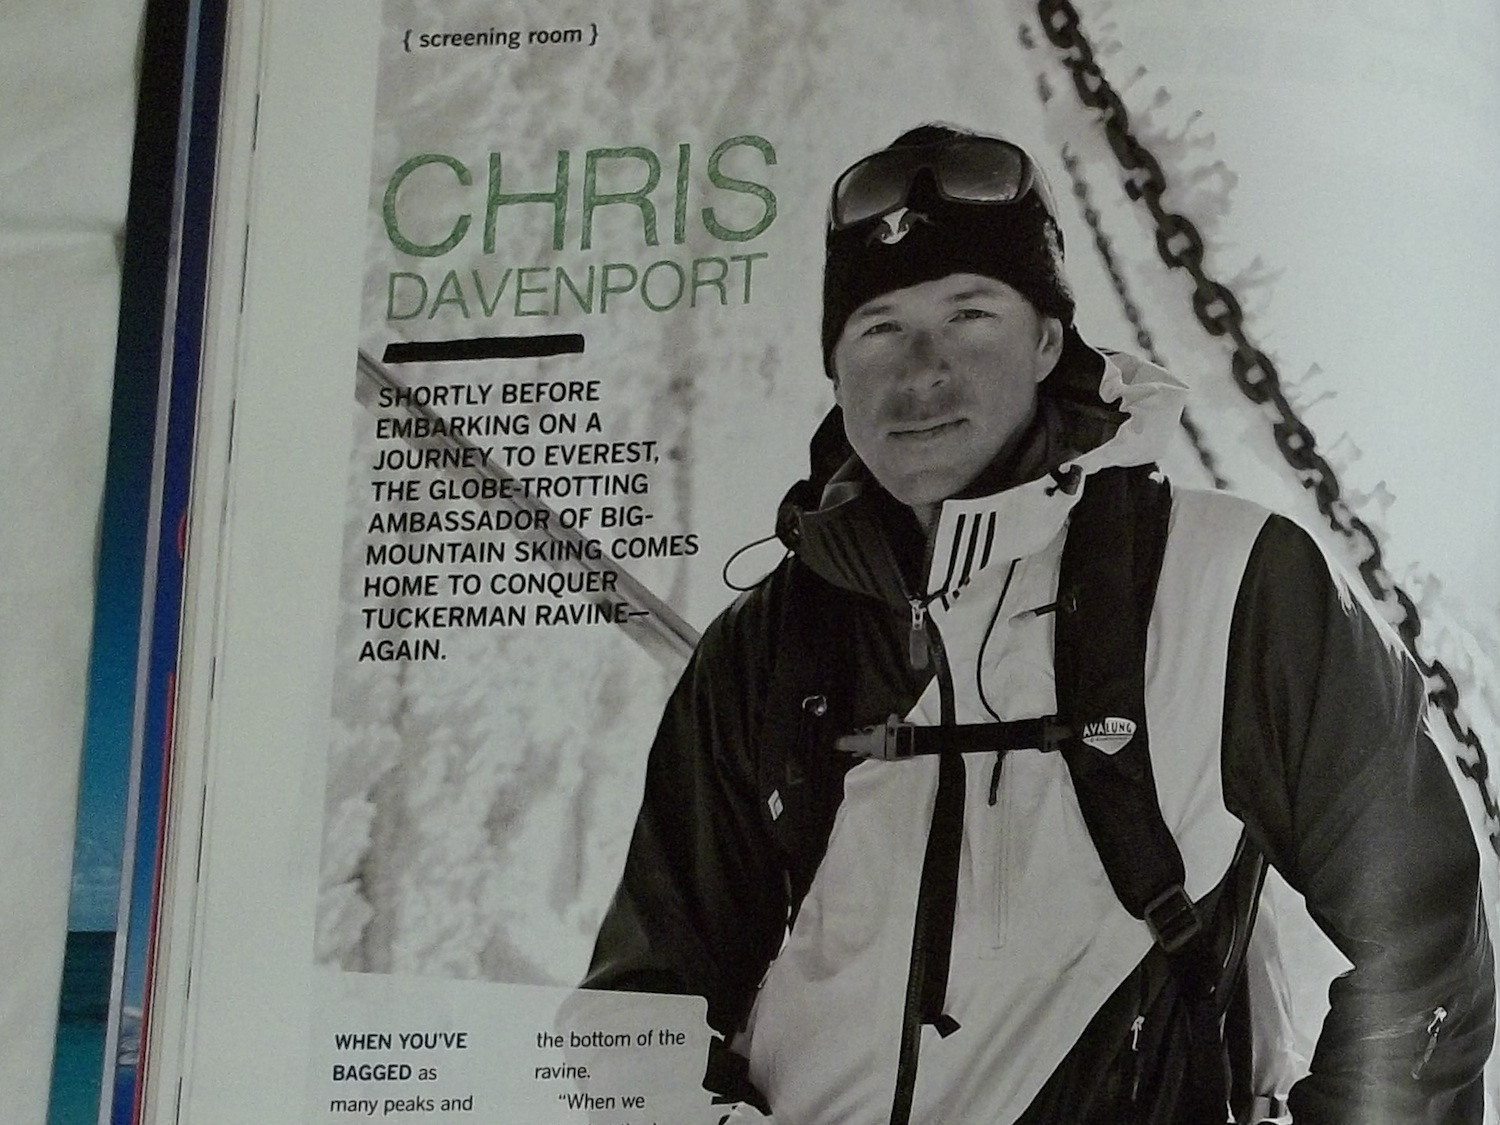 Profile of big mountain skier Chris Davenport for the Warren Miller magazine